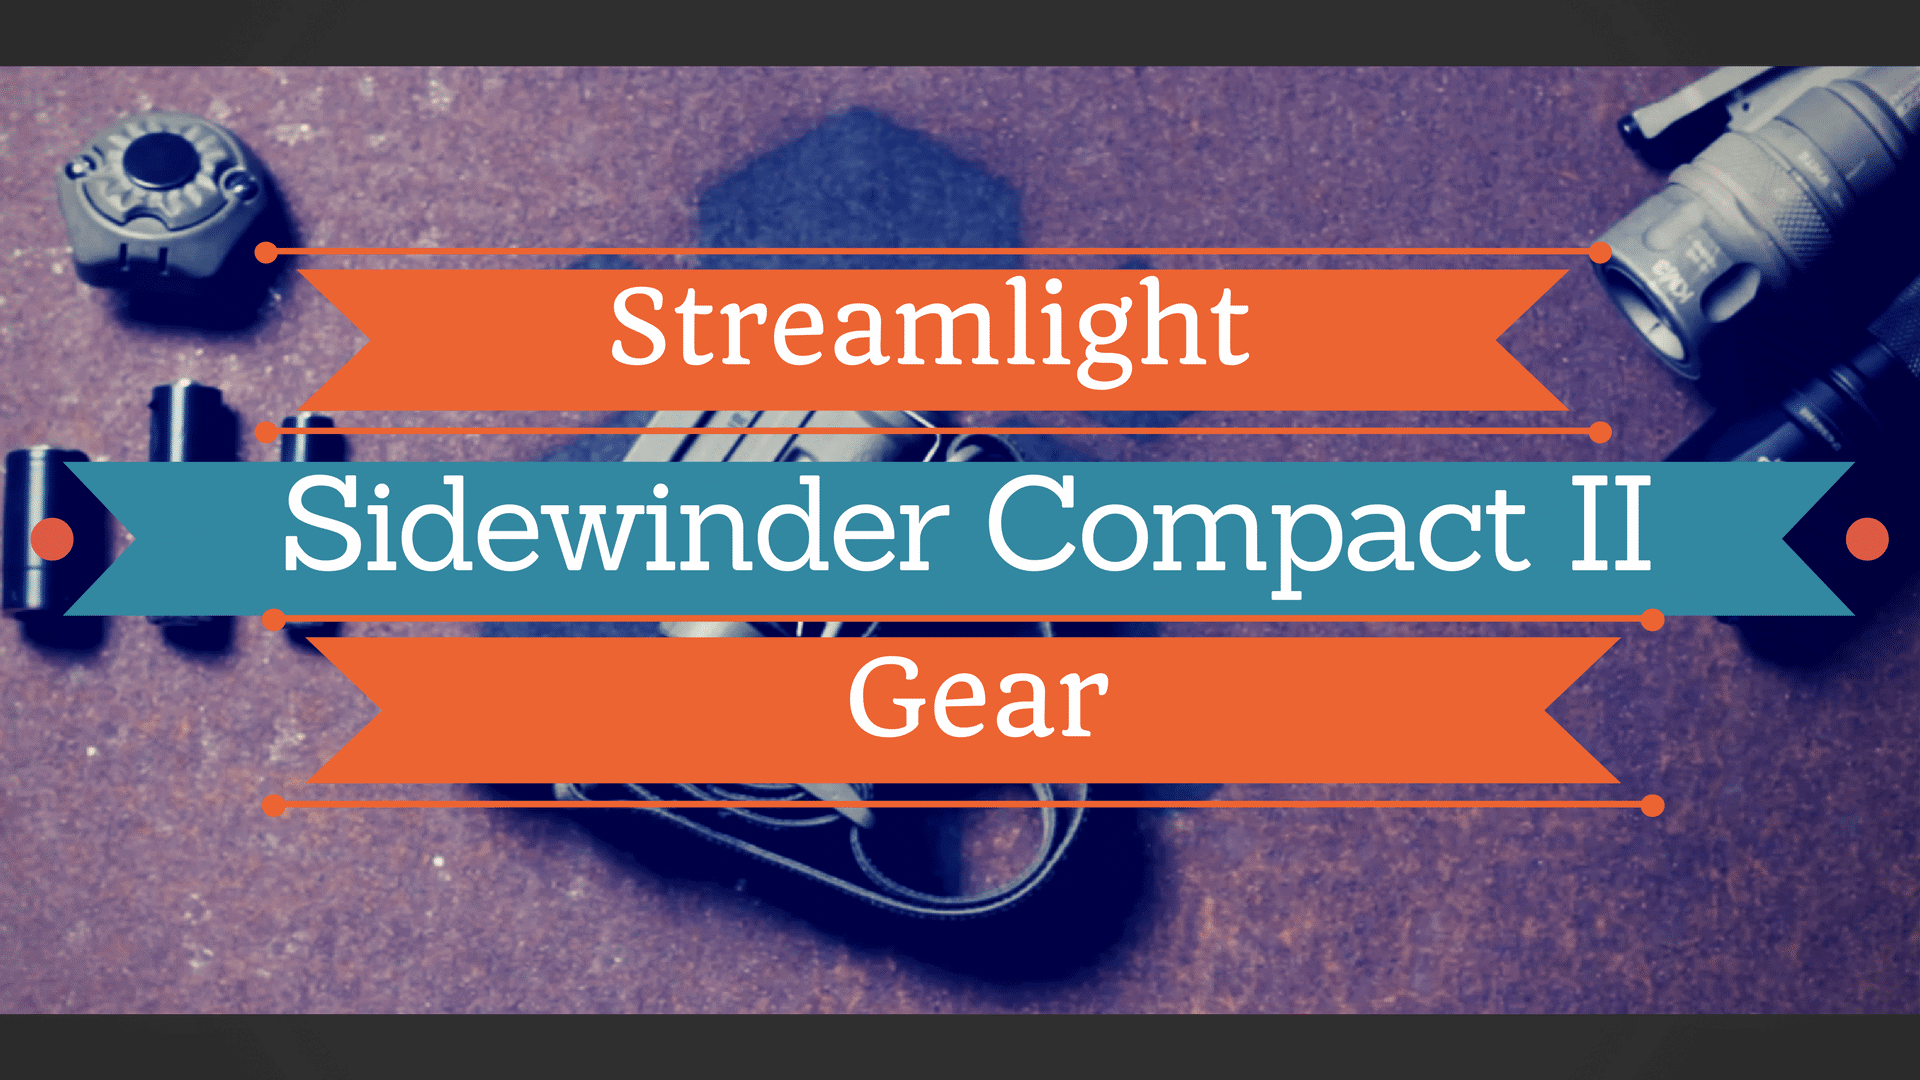 Streamlight Sidewinder Compact II Gear